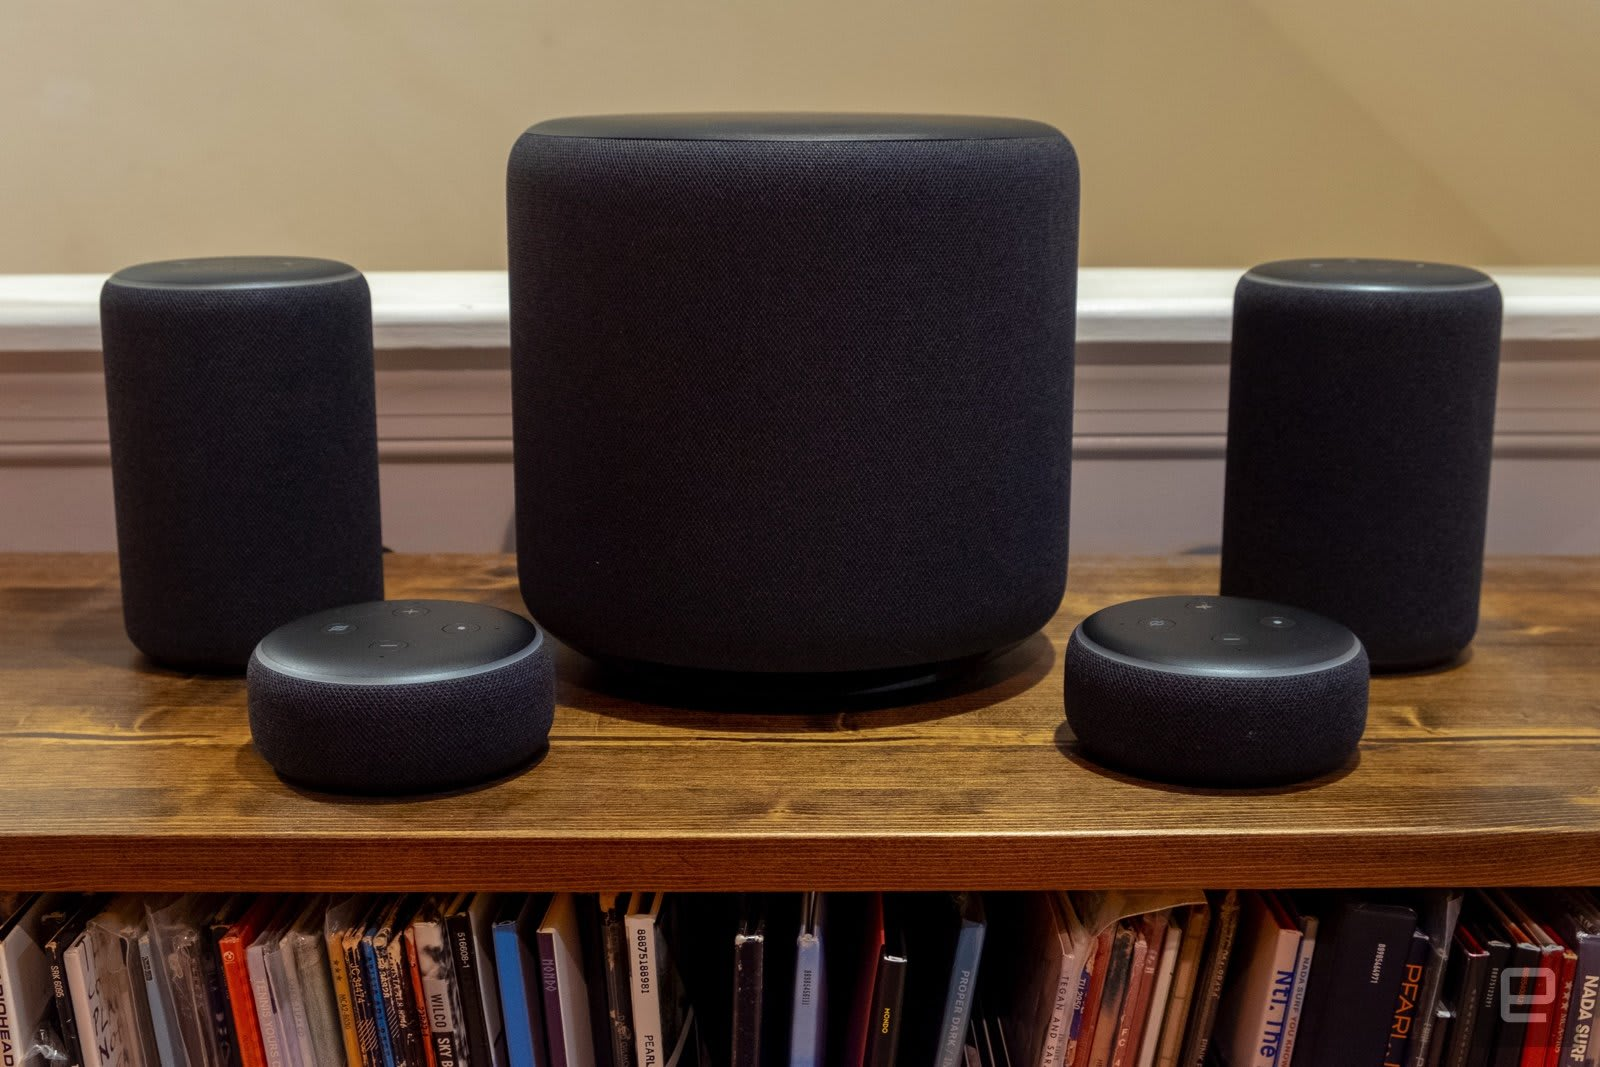 Amazon is reportedly working on a better-sounding Echo